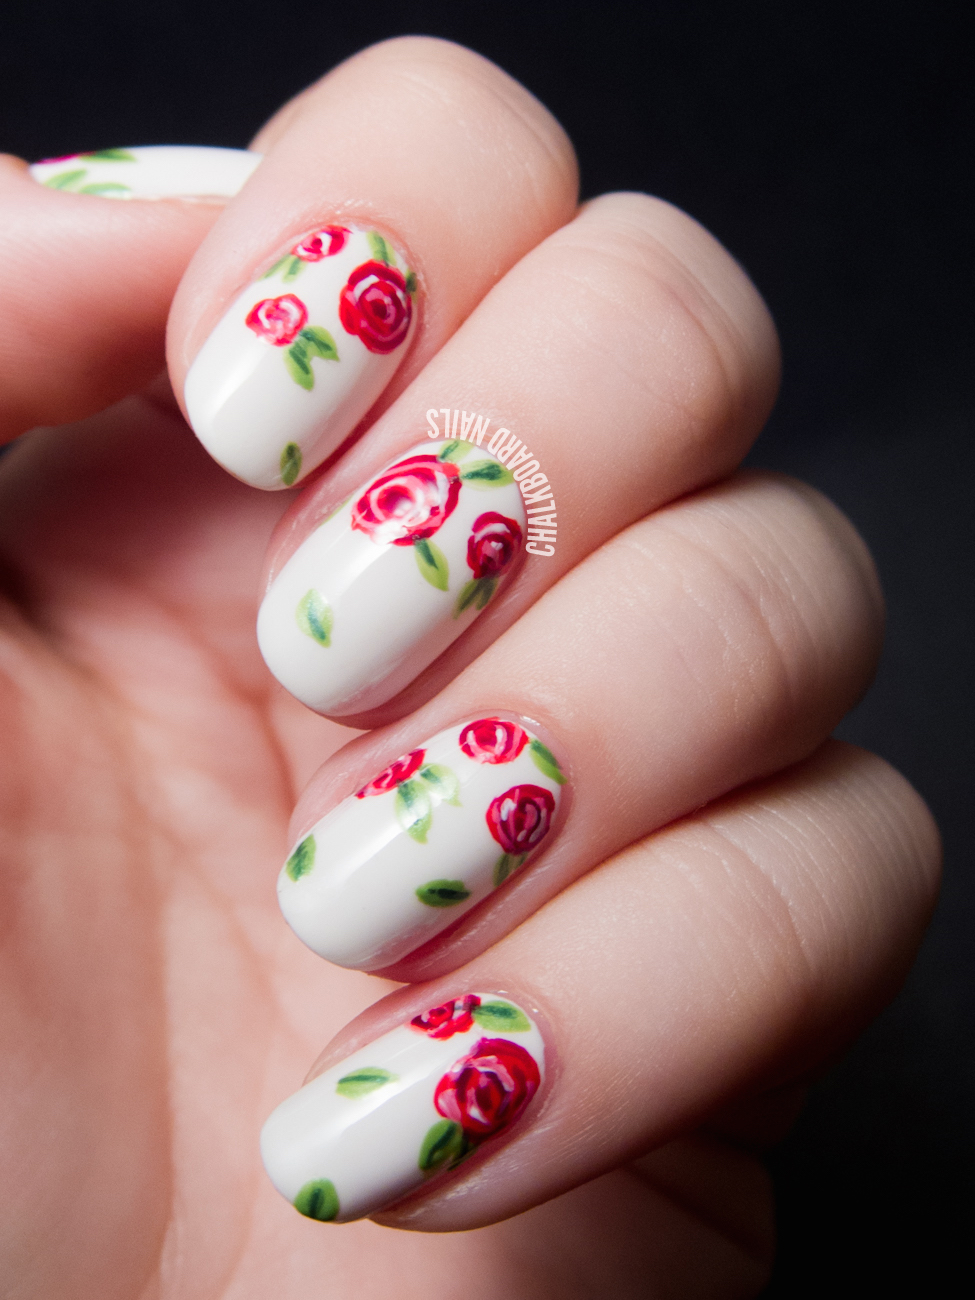 Beautiful nail designs for weddings bridal nail art ideas prinsesfo Images